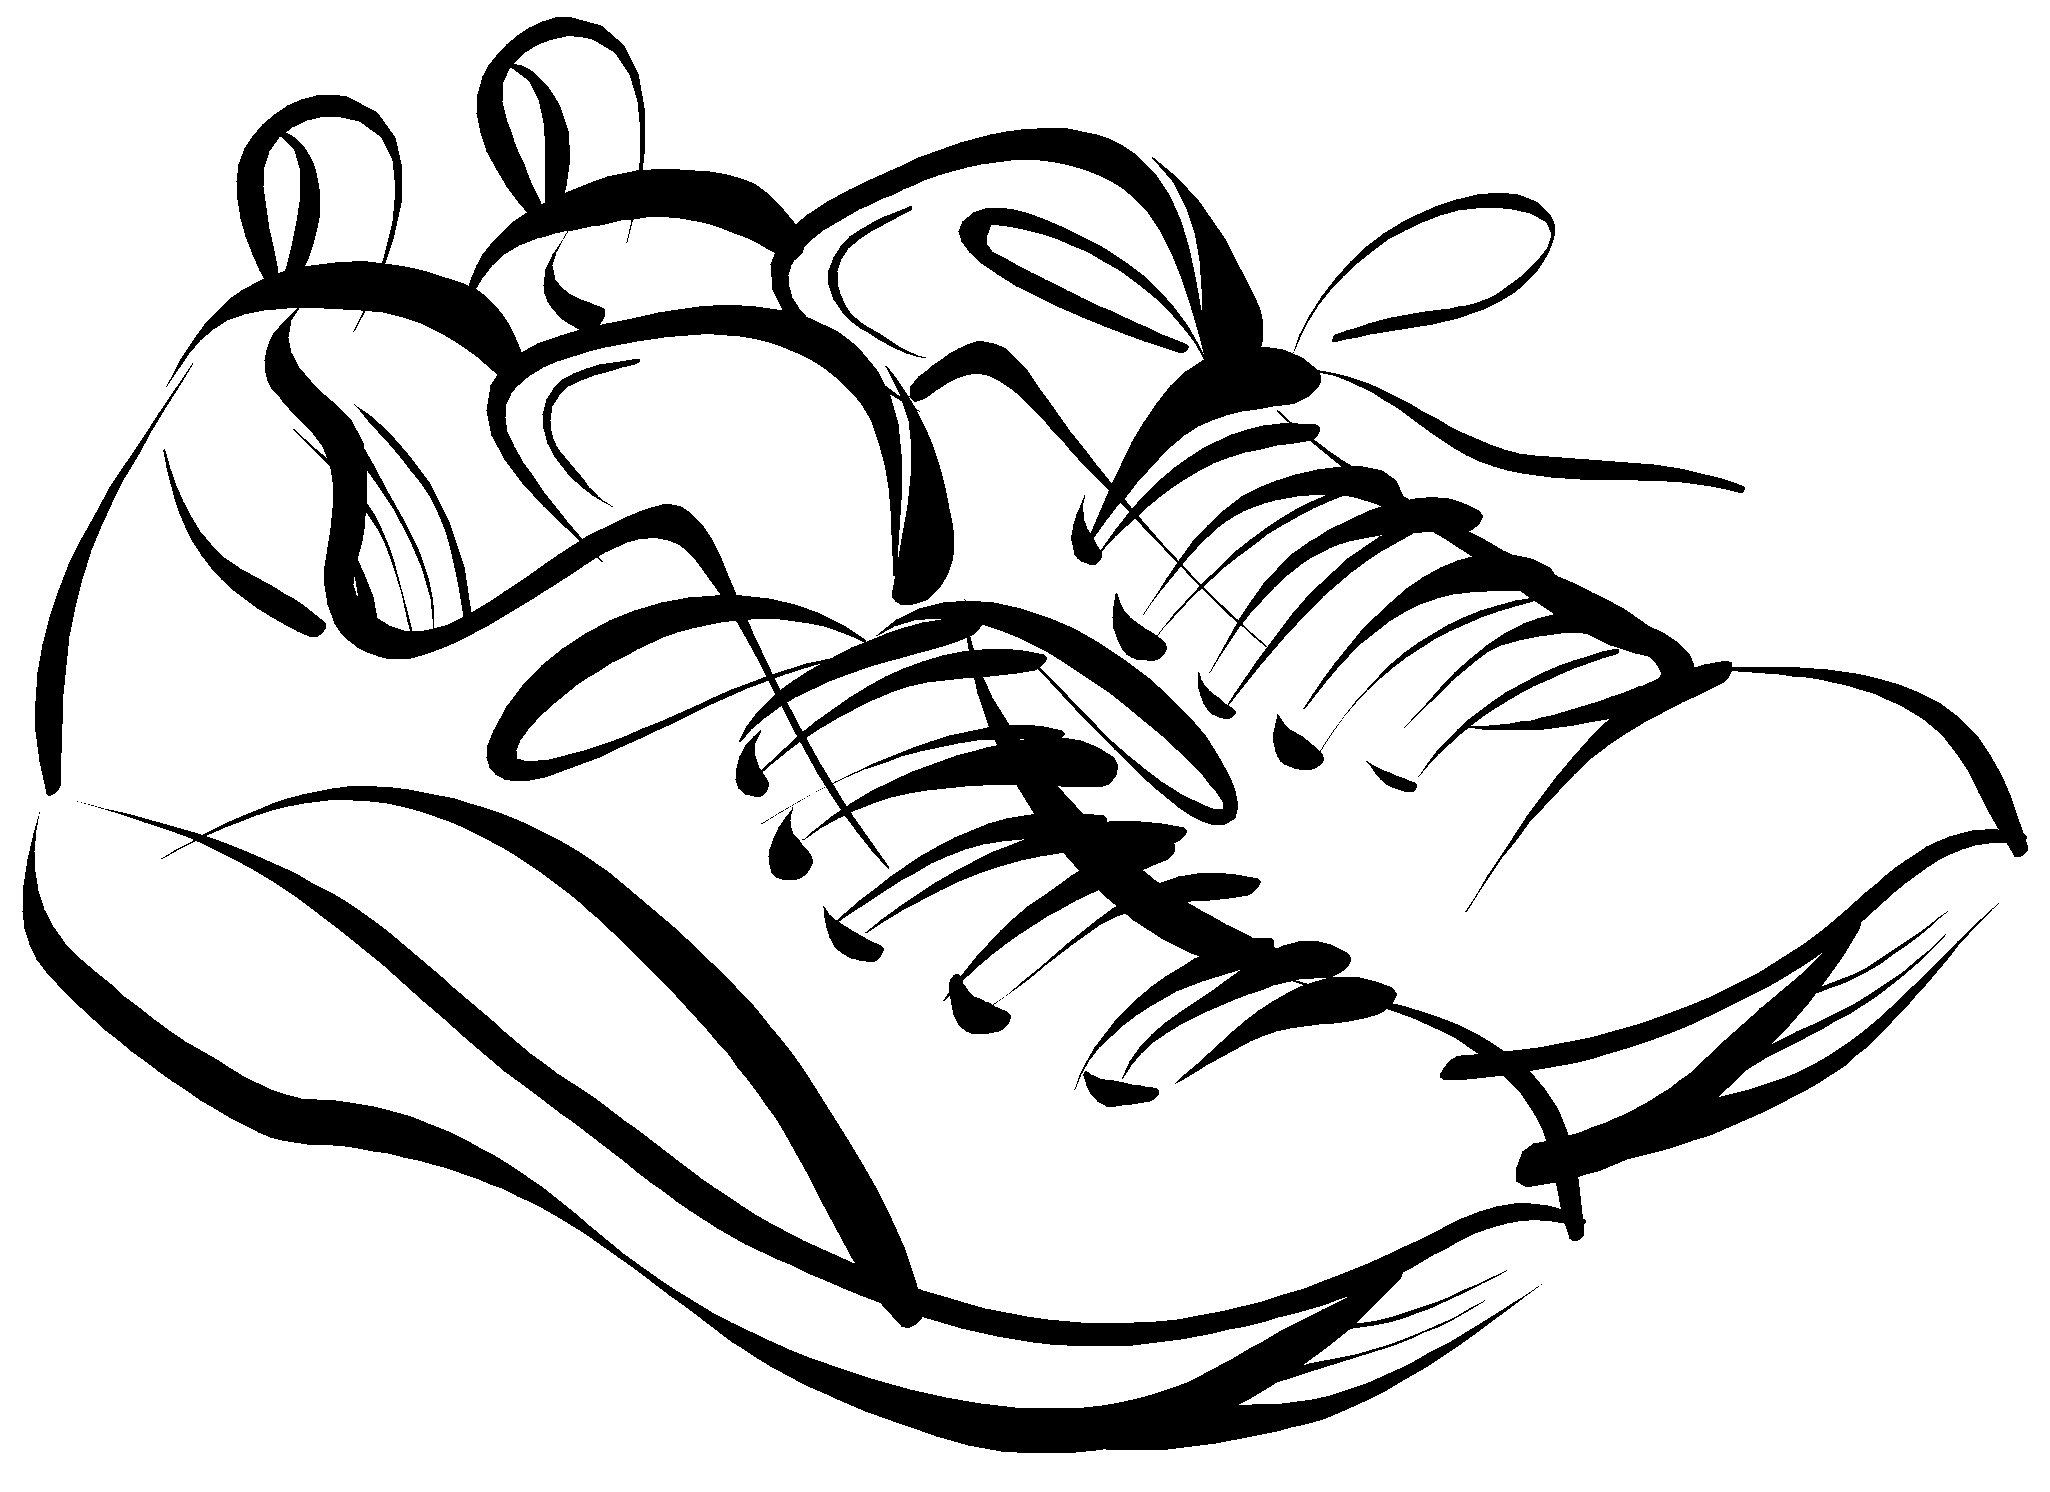 svg royalty free  collection of shoe. Tennis shoes clipart